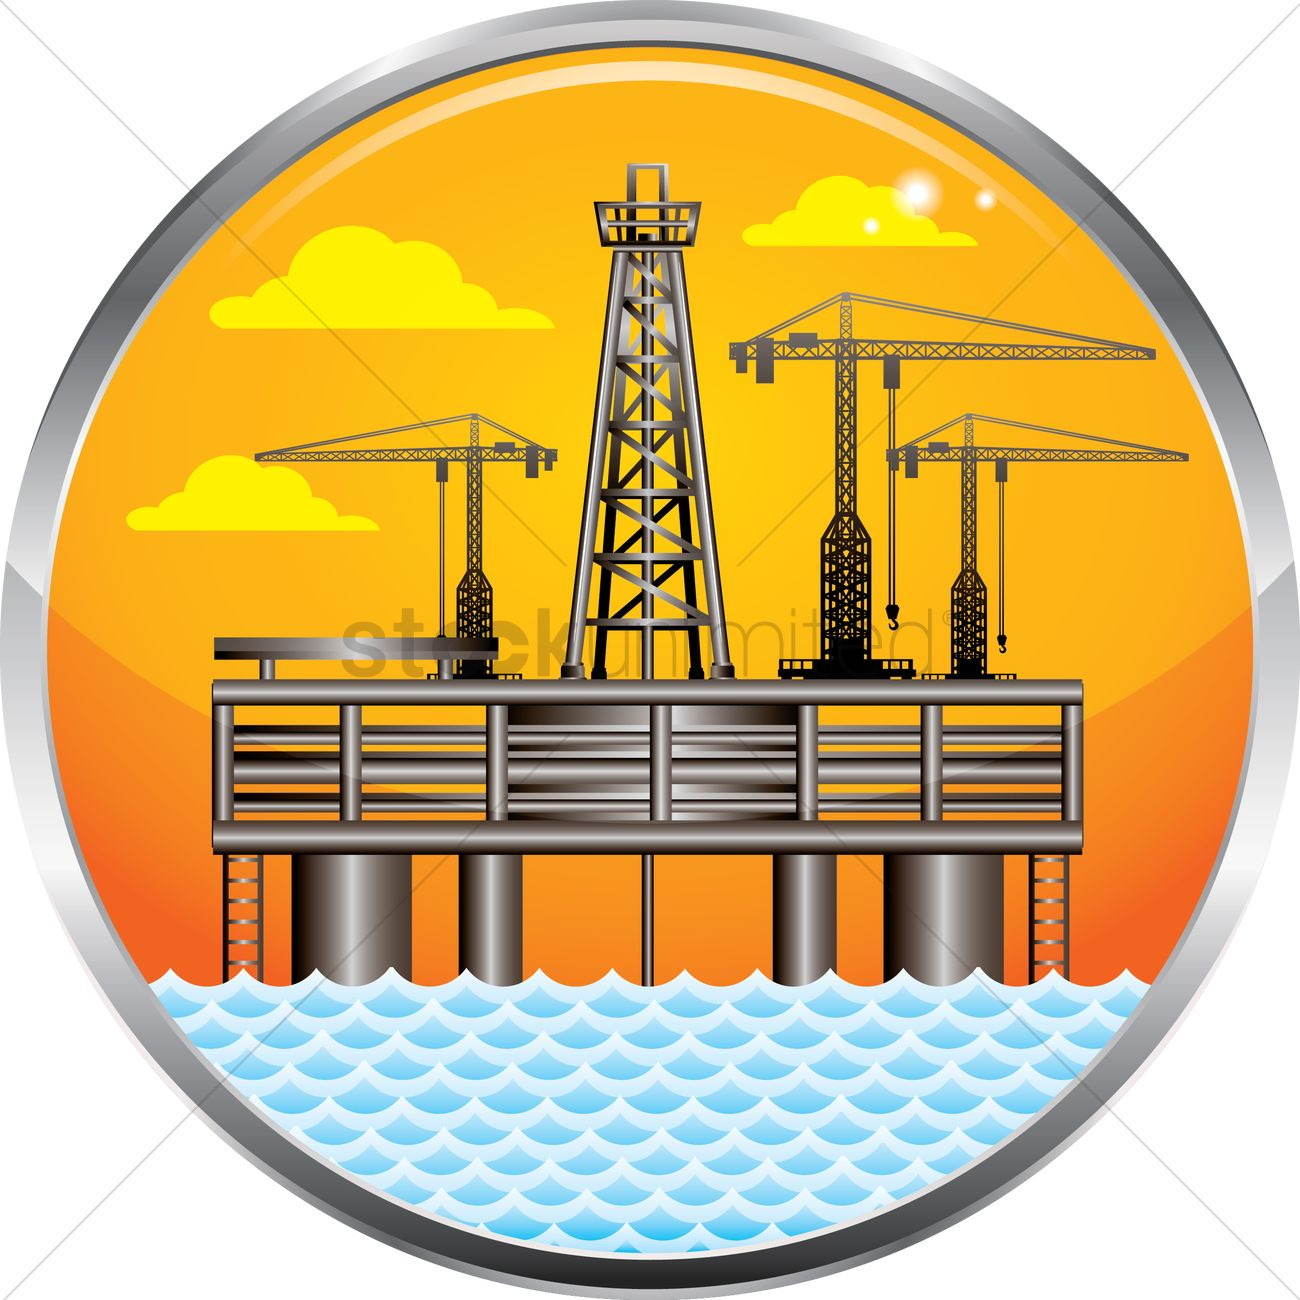 1300x1300 Oil And Gas Platform Vector Image